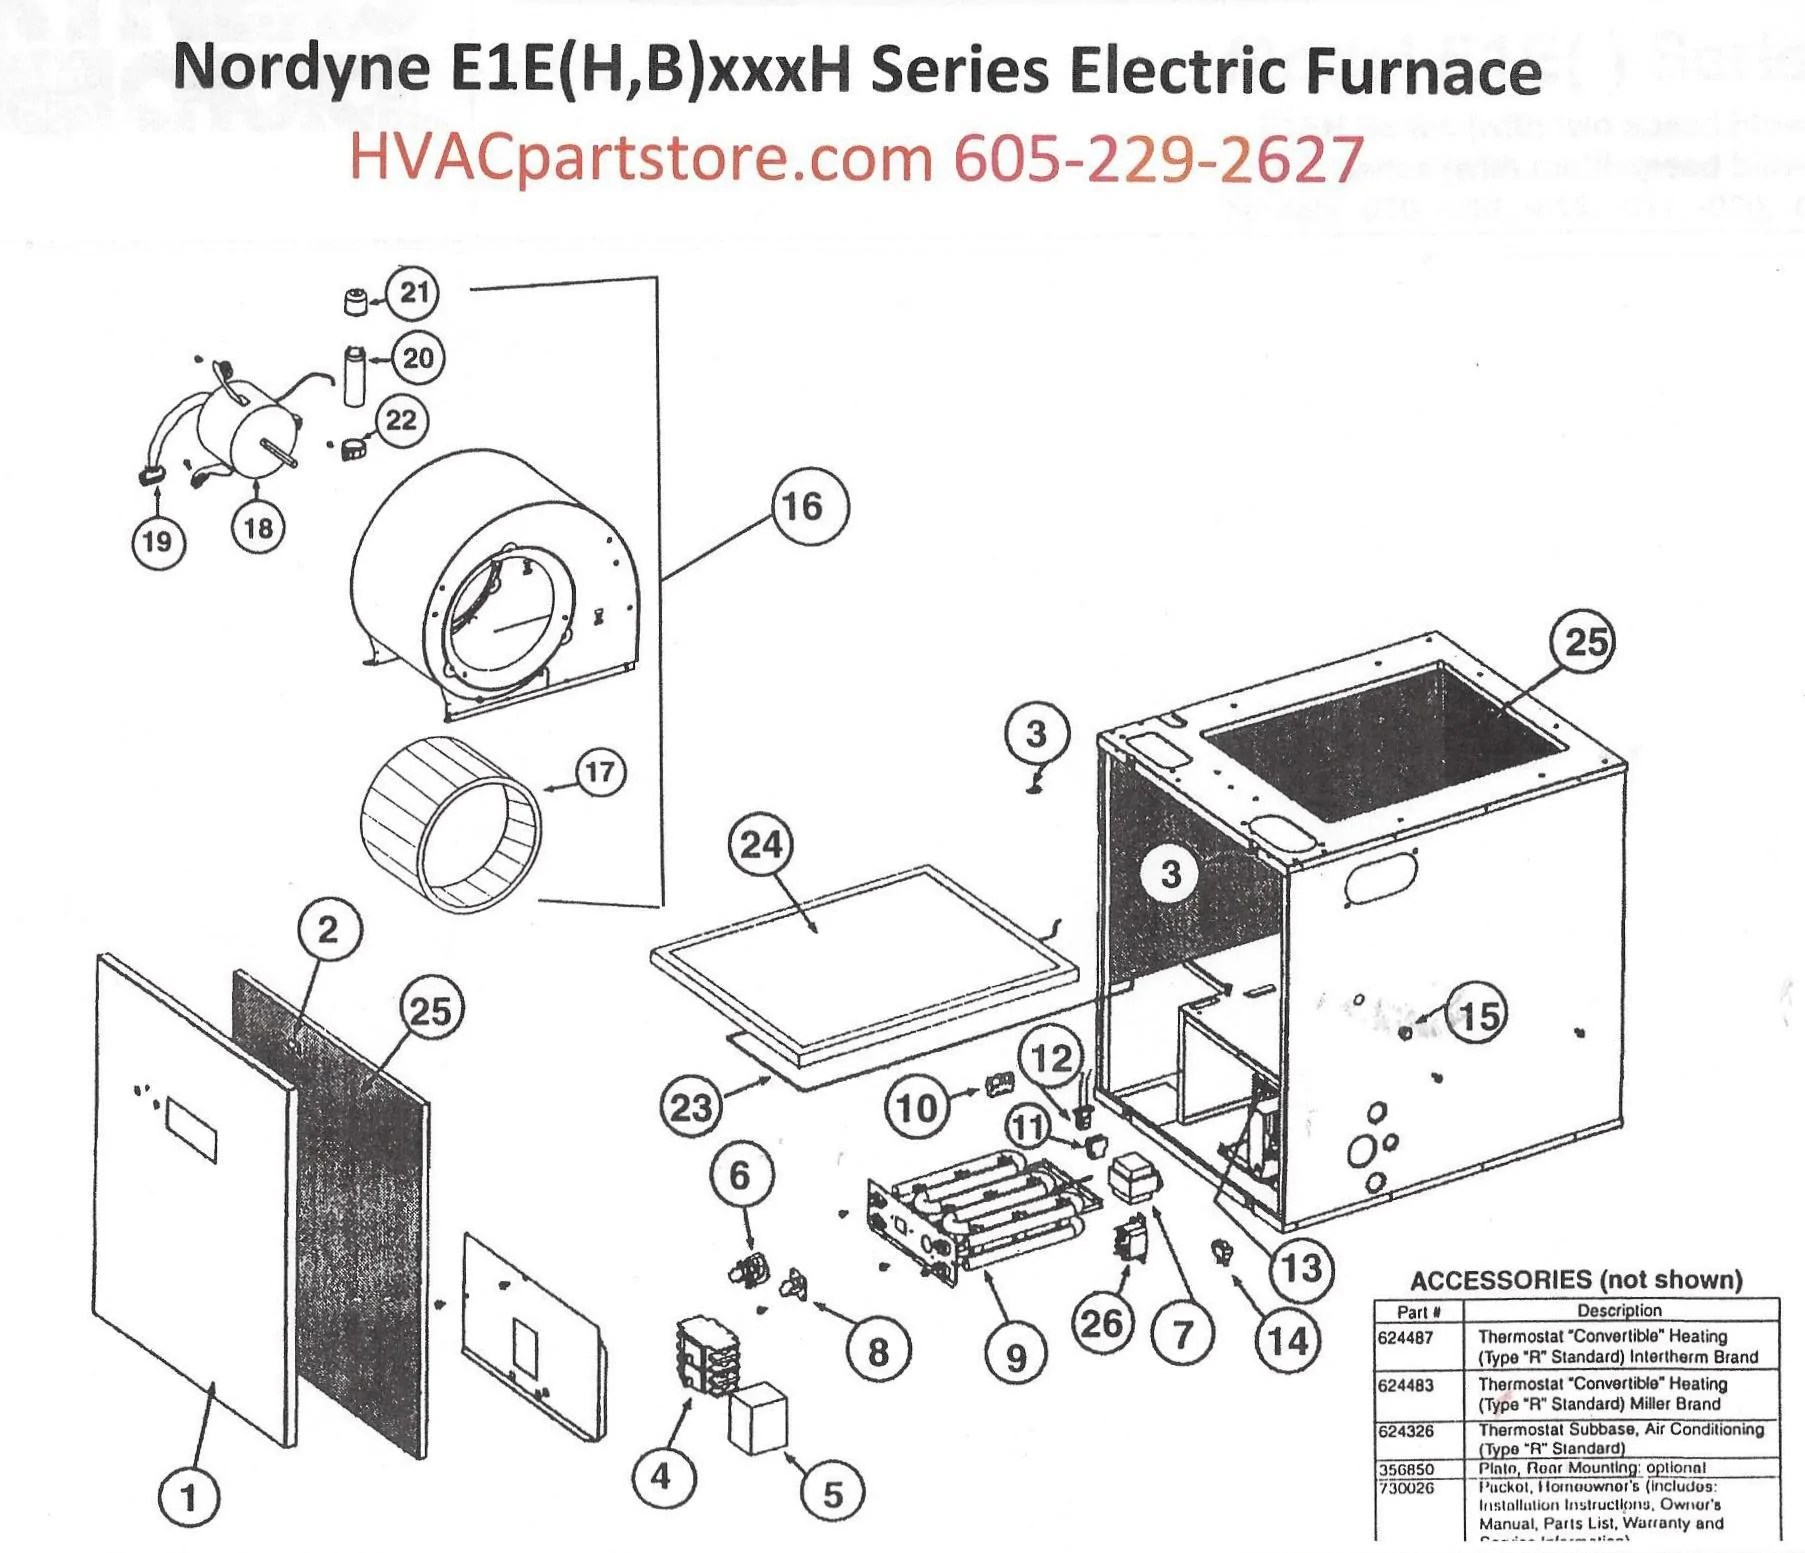 intertherm wiring diagram 2005 dodge dakota parts e1eh017h nordyne electric furnace  hvacpartstore